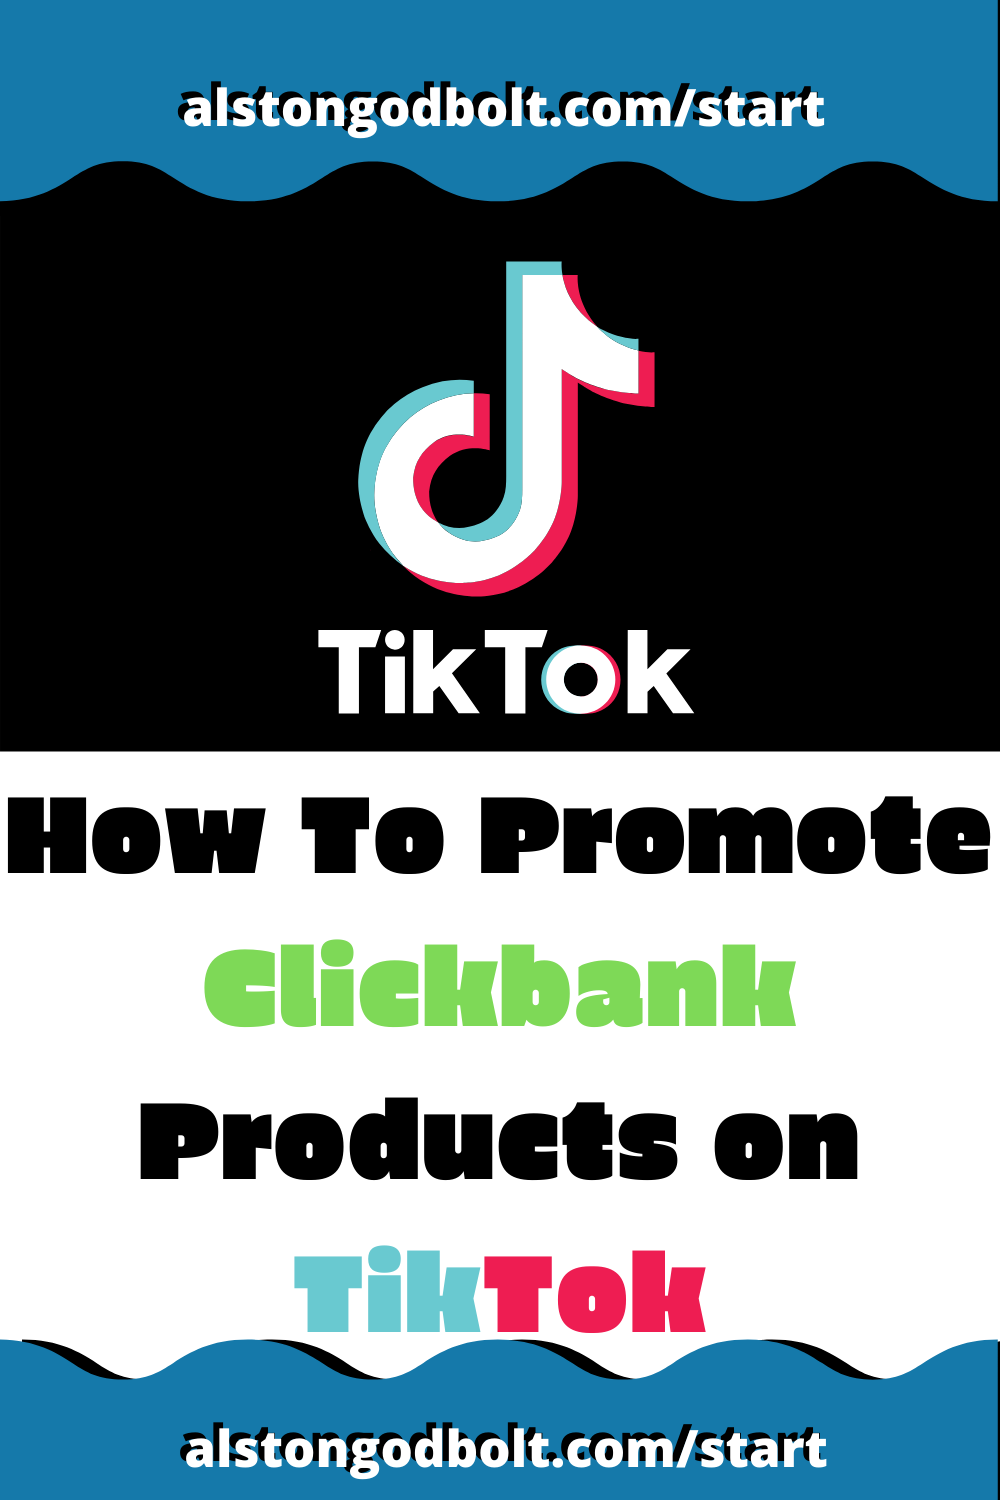 How To Buy Tiktok Real Followers To Promote Your Tiktok Video Fast Real Followers Real Video